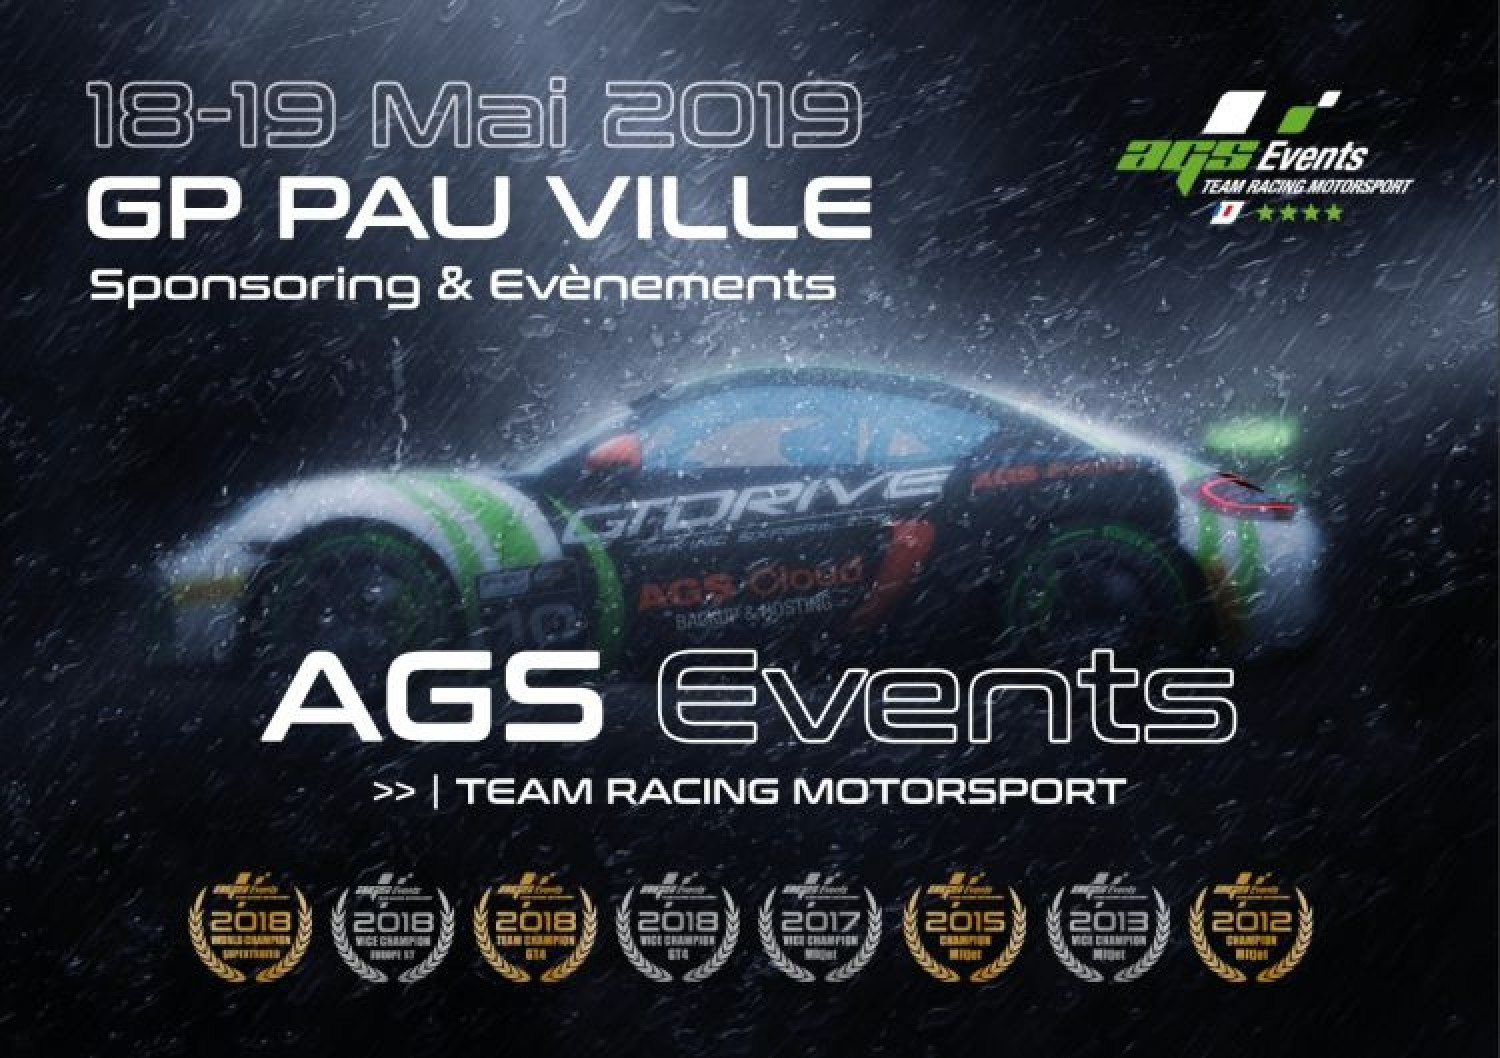 Grand Prix de Pau : volant à pourvoir chez AGS Events